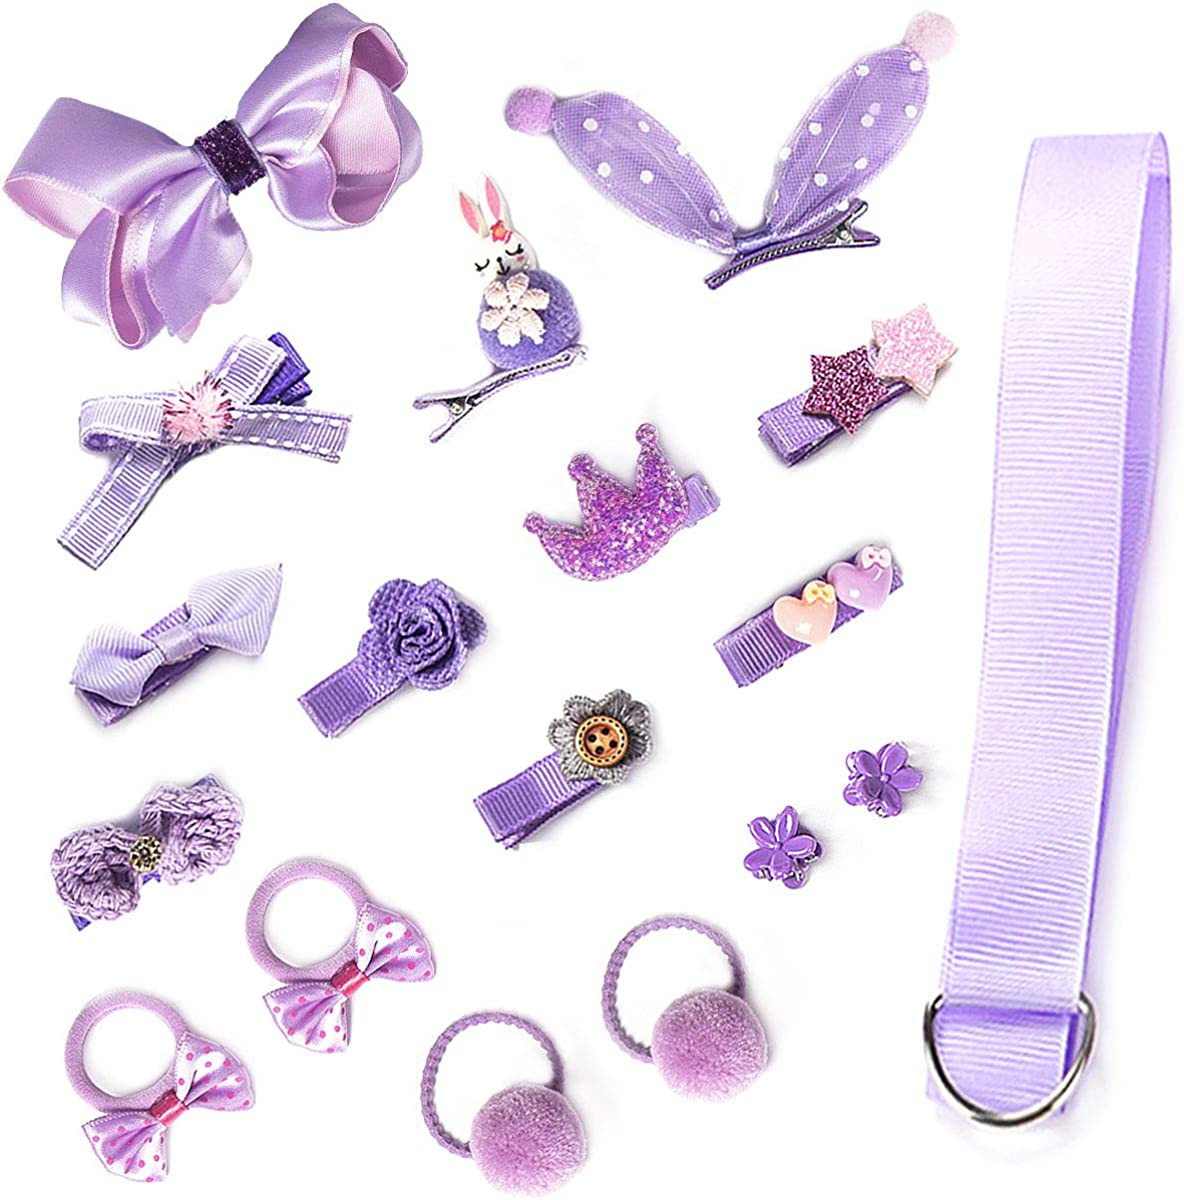 18-36PCS Baby Girl's Hair Accessories Clips Cute Hair Bows Baby Elastic Hair Ties Gift Box